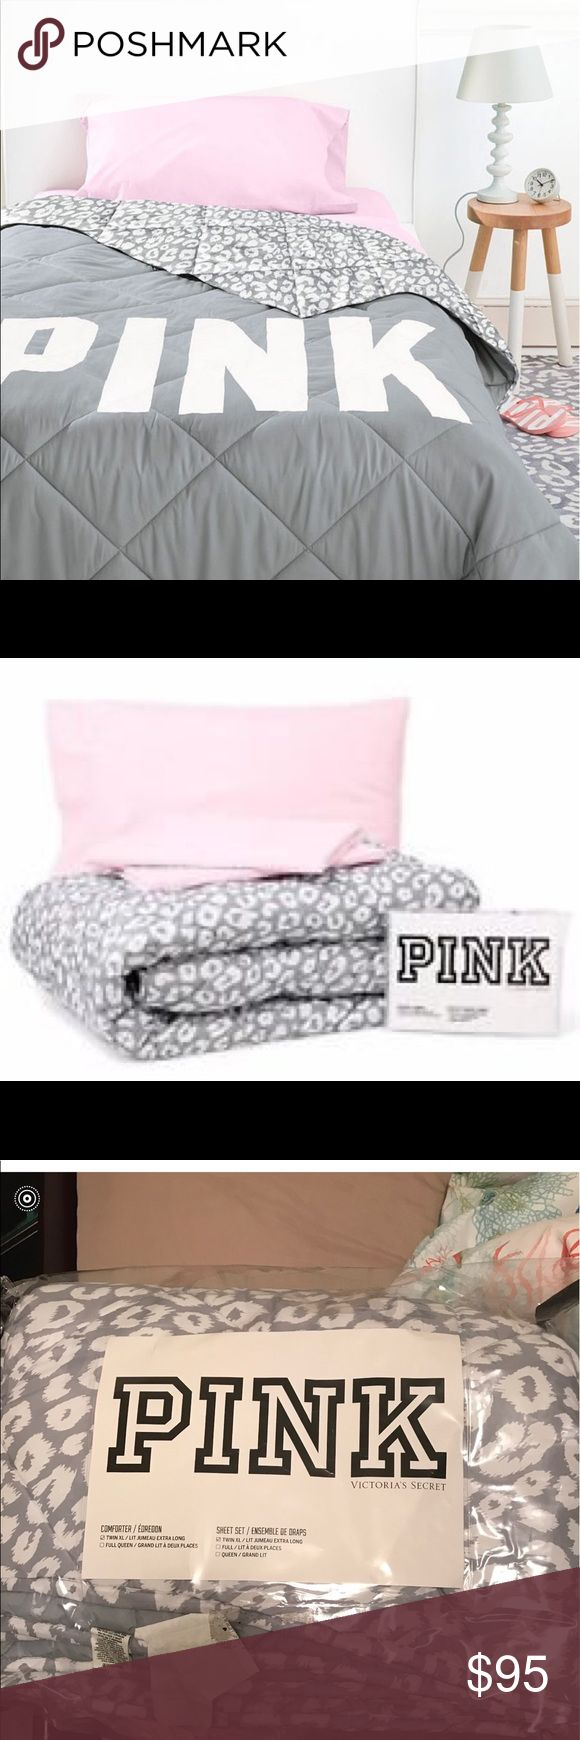 Vs pink bed sets - New Vs Pink Cheetah Bed Set Twin Xl Included Comforter Fitted Sheet Flat Sheet